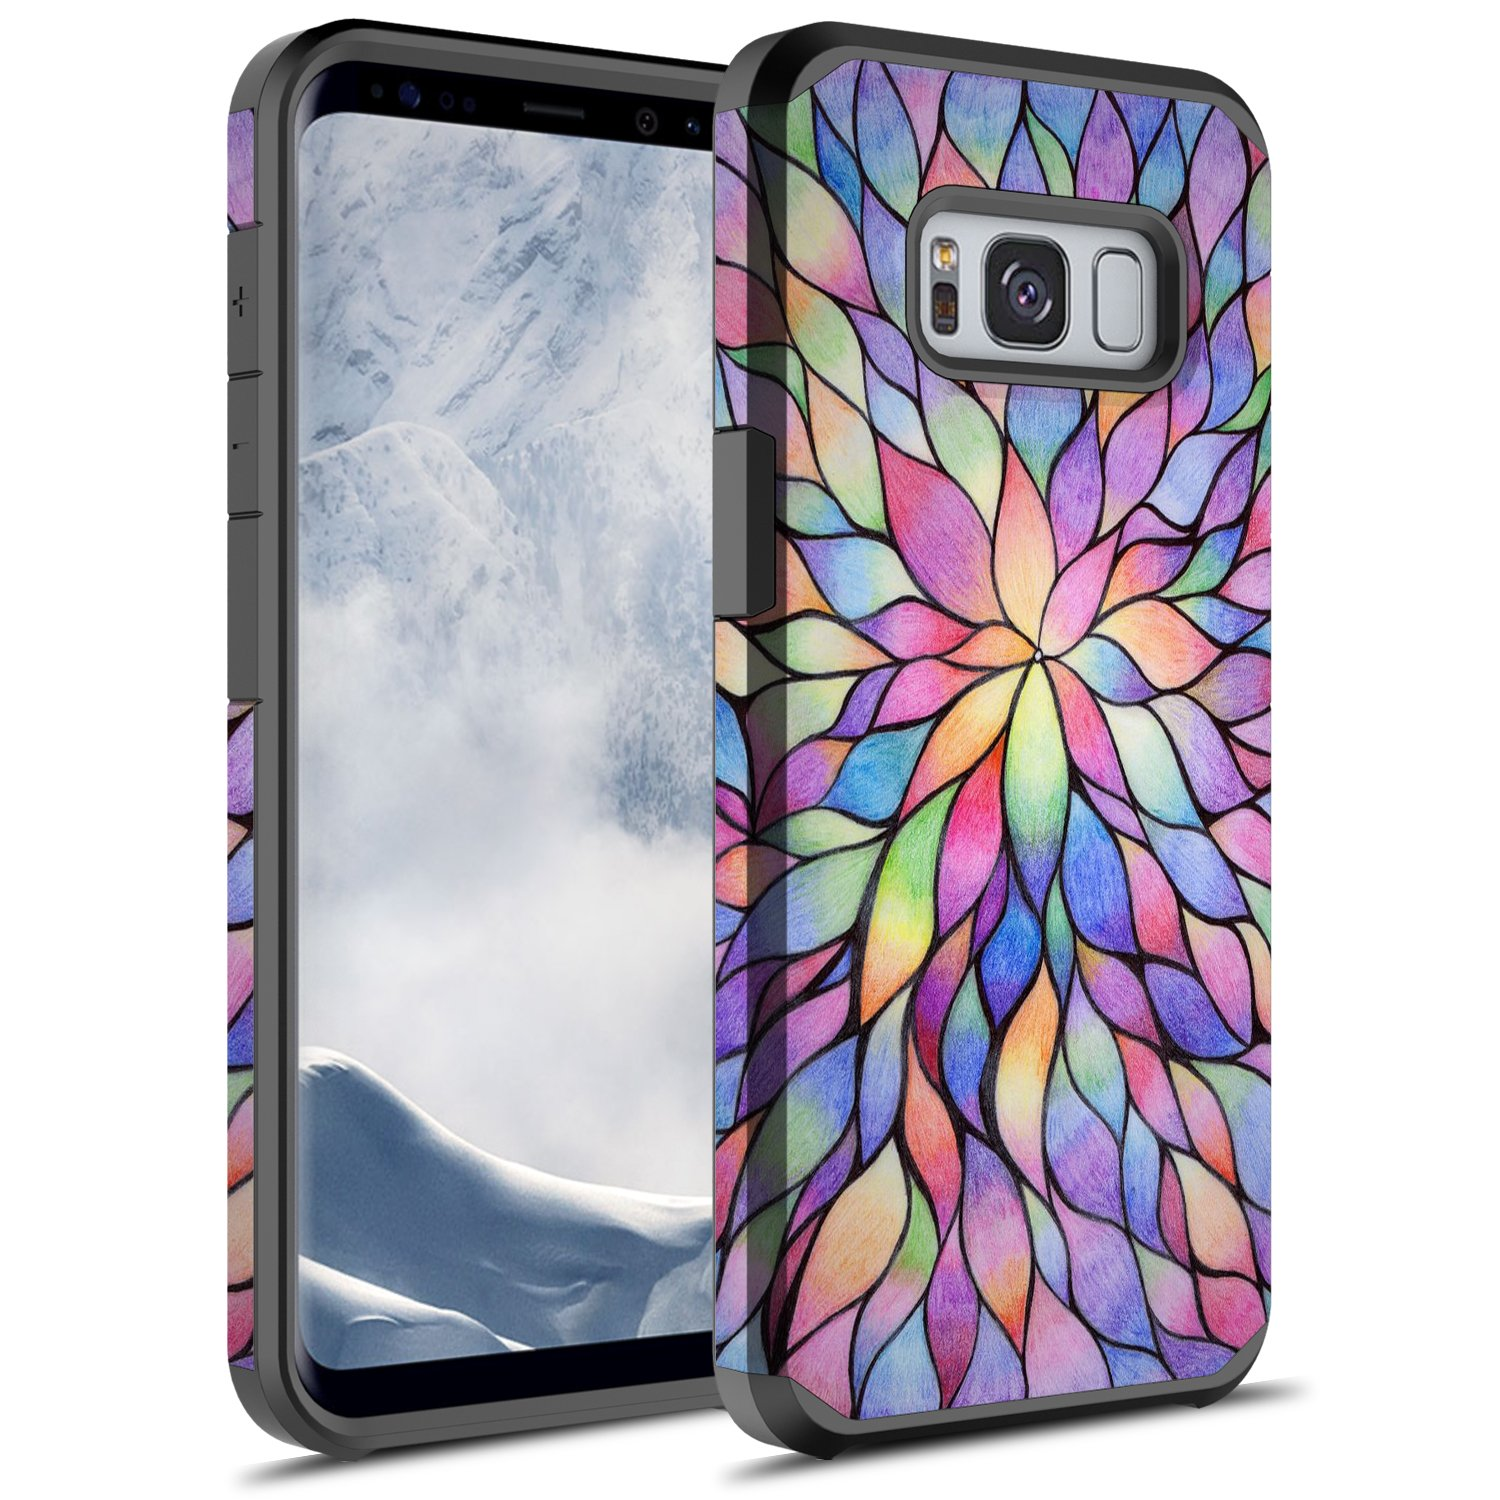 Galaxy S8 Case, GORGCASE [Drop Protection] Dual Layer Graphic Designed Shockproof Hard Hybird Slim Defender Armor Protector Cover for Samsung Galaxy S8 (COLORFUL PETALS)